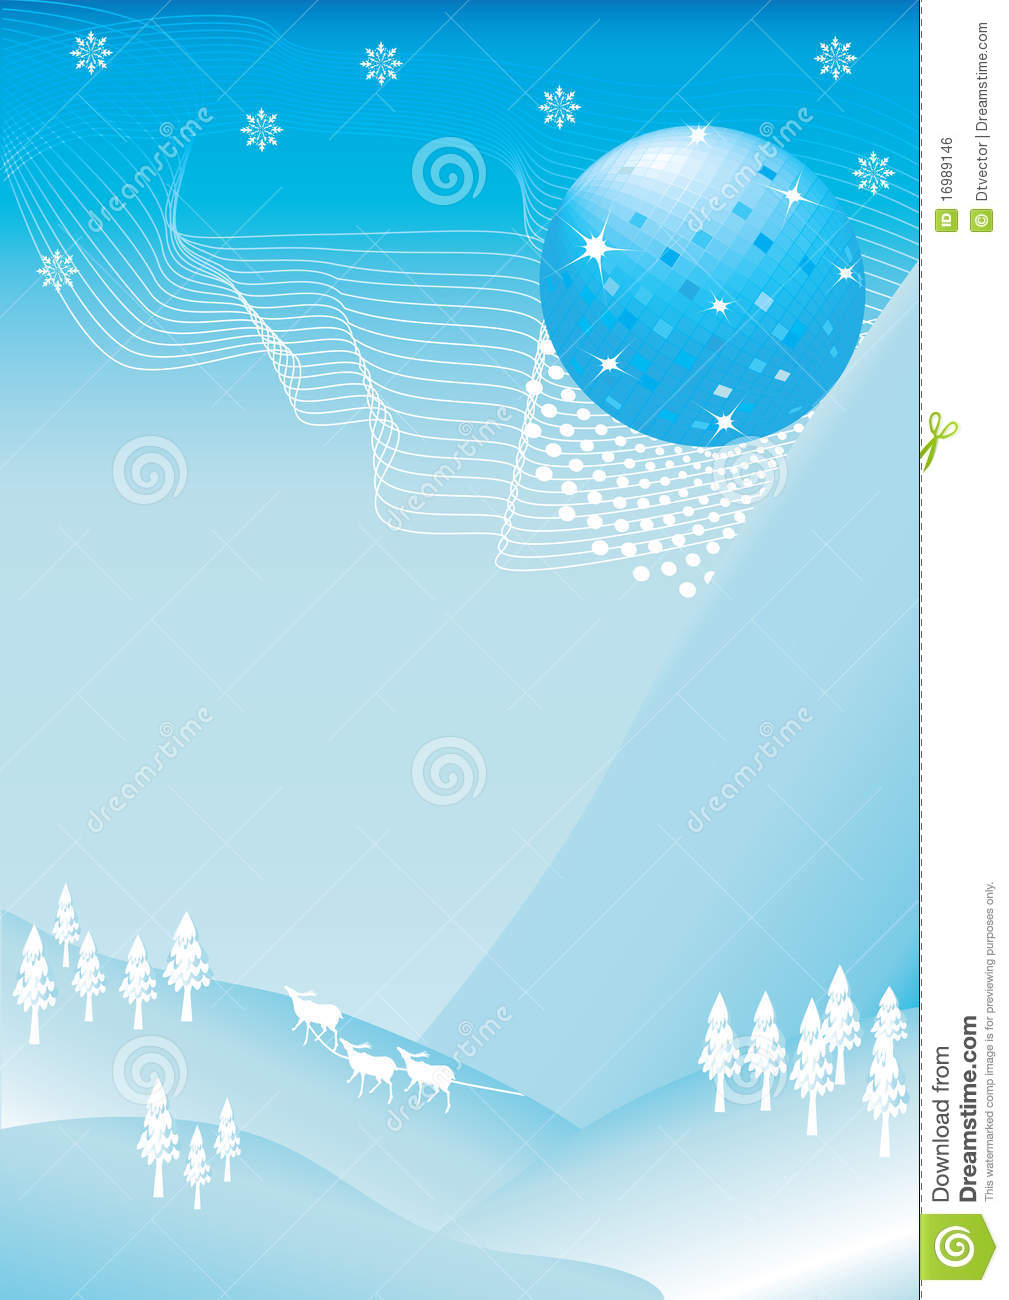 Falling in december eps royalty free stock image image 16989146